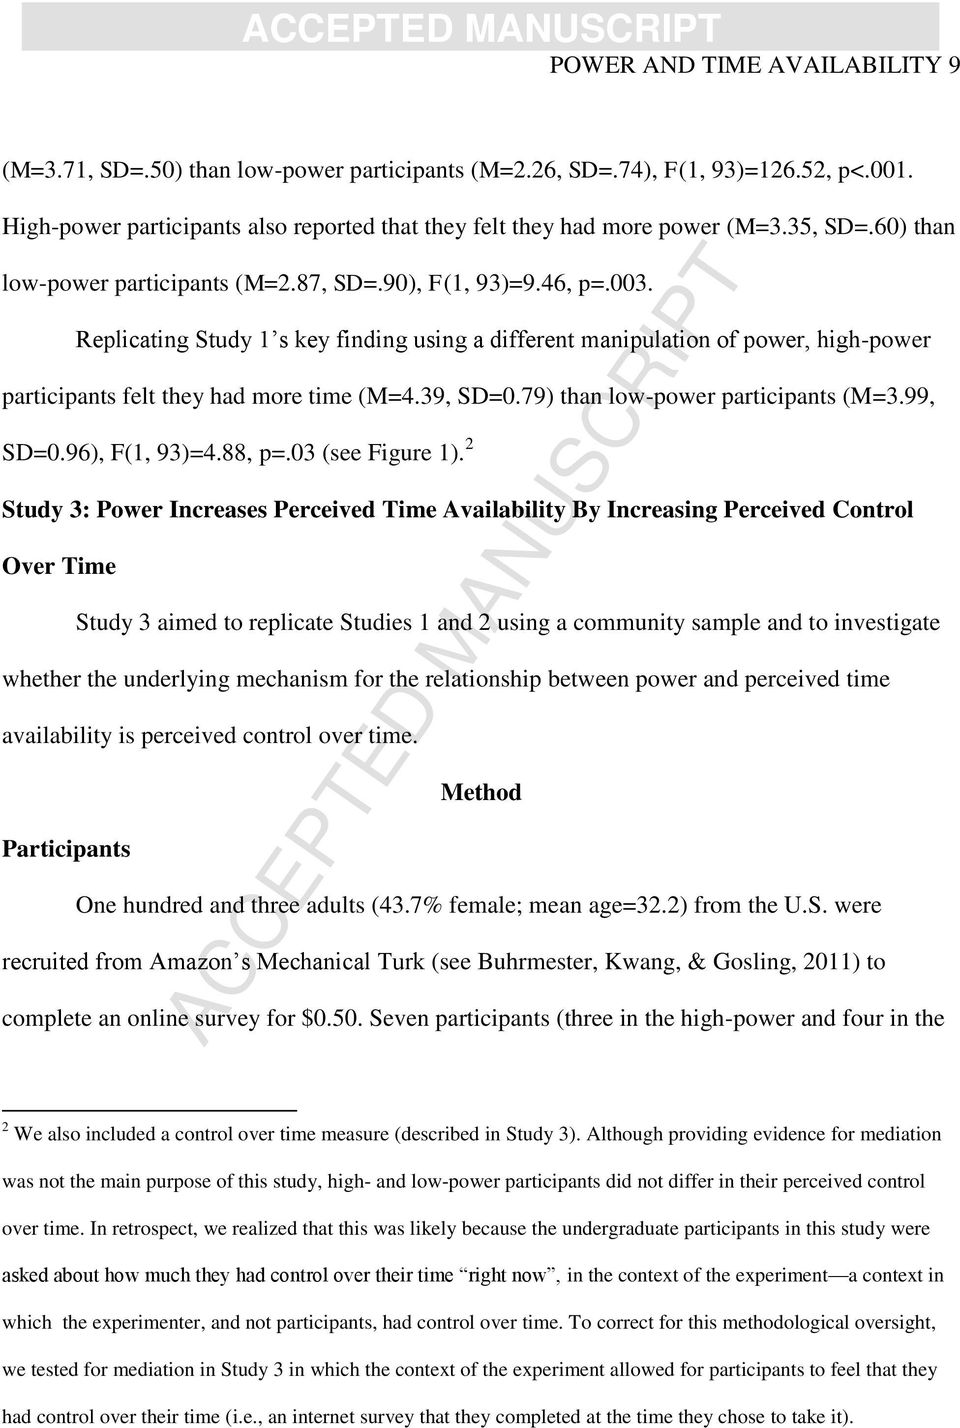 Replicating Study 1 s key finding using a different manipulation of power, high-power participants felt they had more time (M=4.39, SD=0.79) than low-power participants (M=3.99, SD=0.96), F(1, 93)=4.